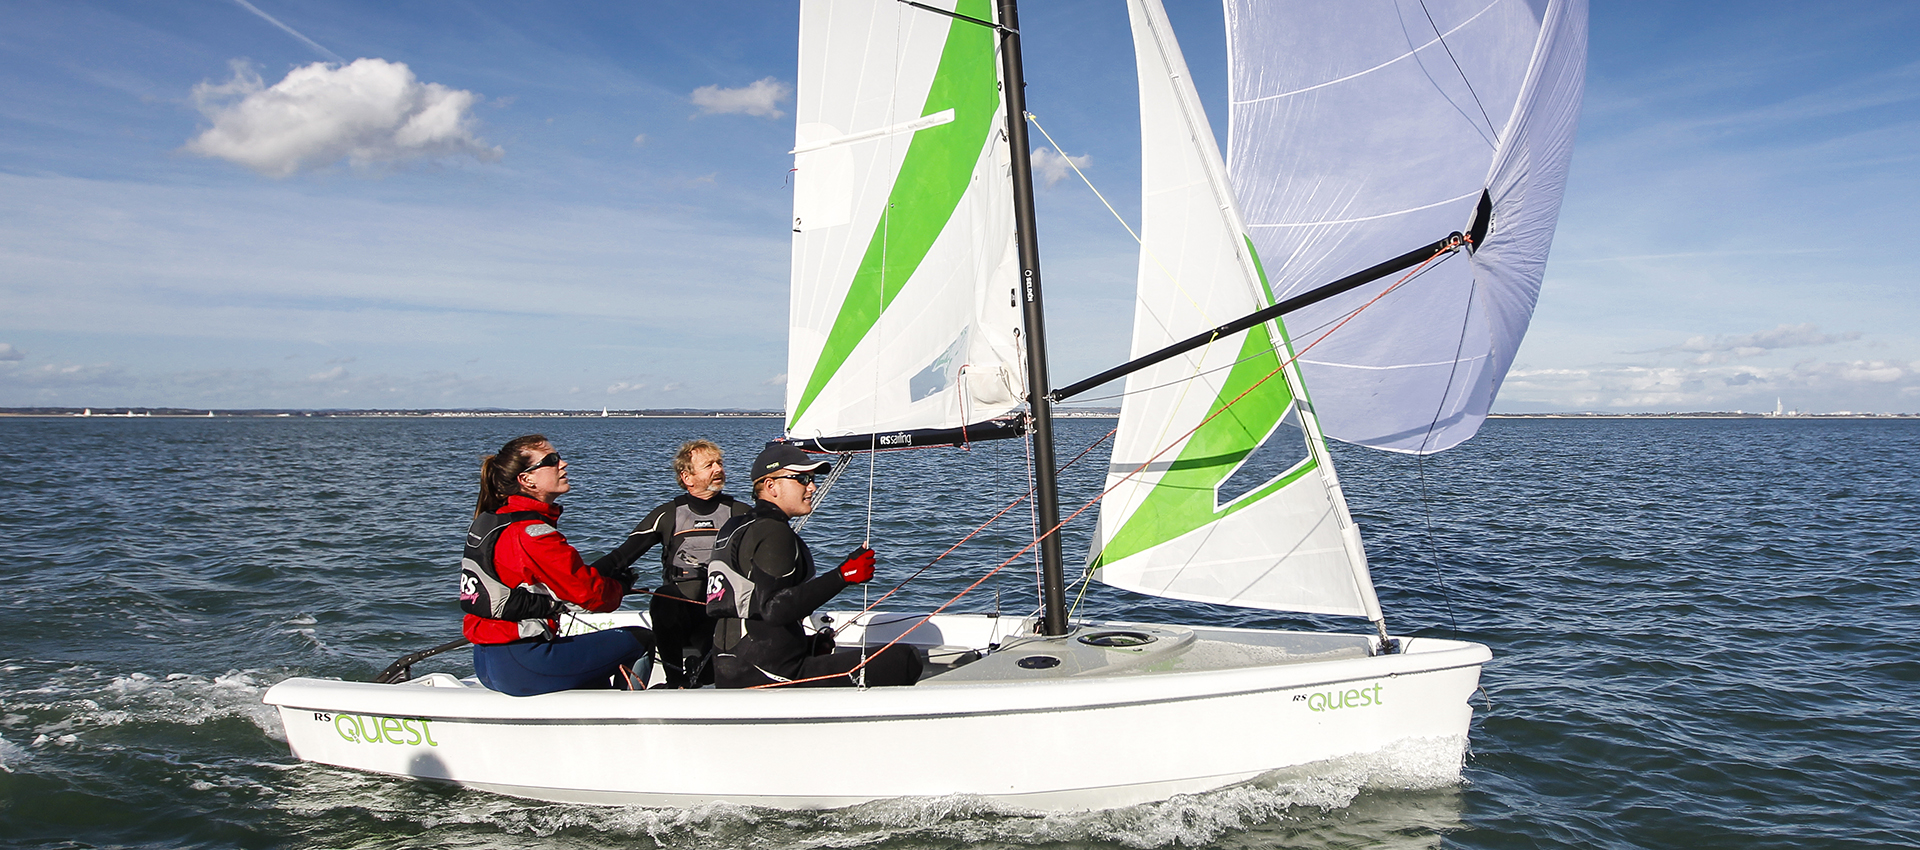 Rs Quest Sailboat The Best Seller For Training Or Family